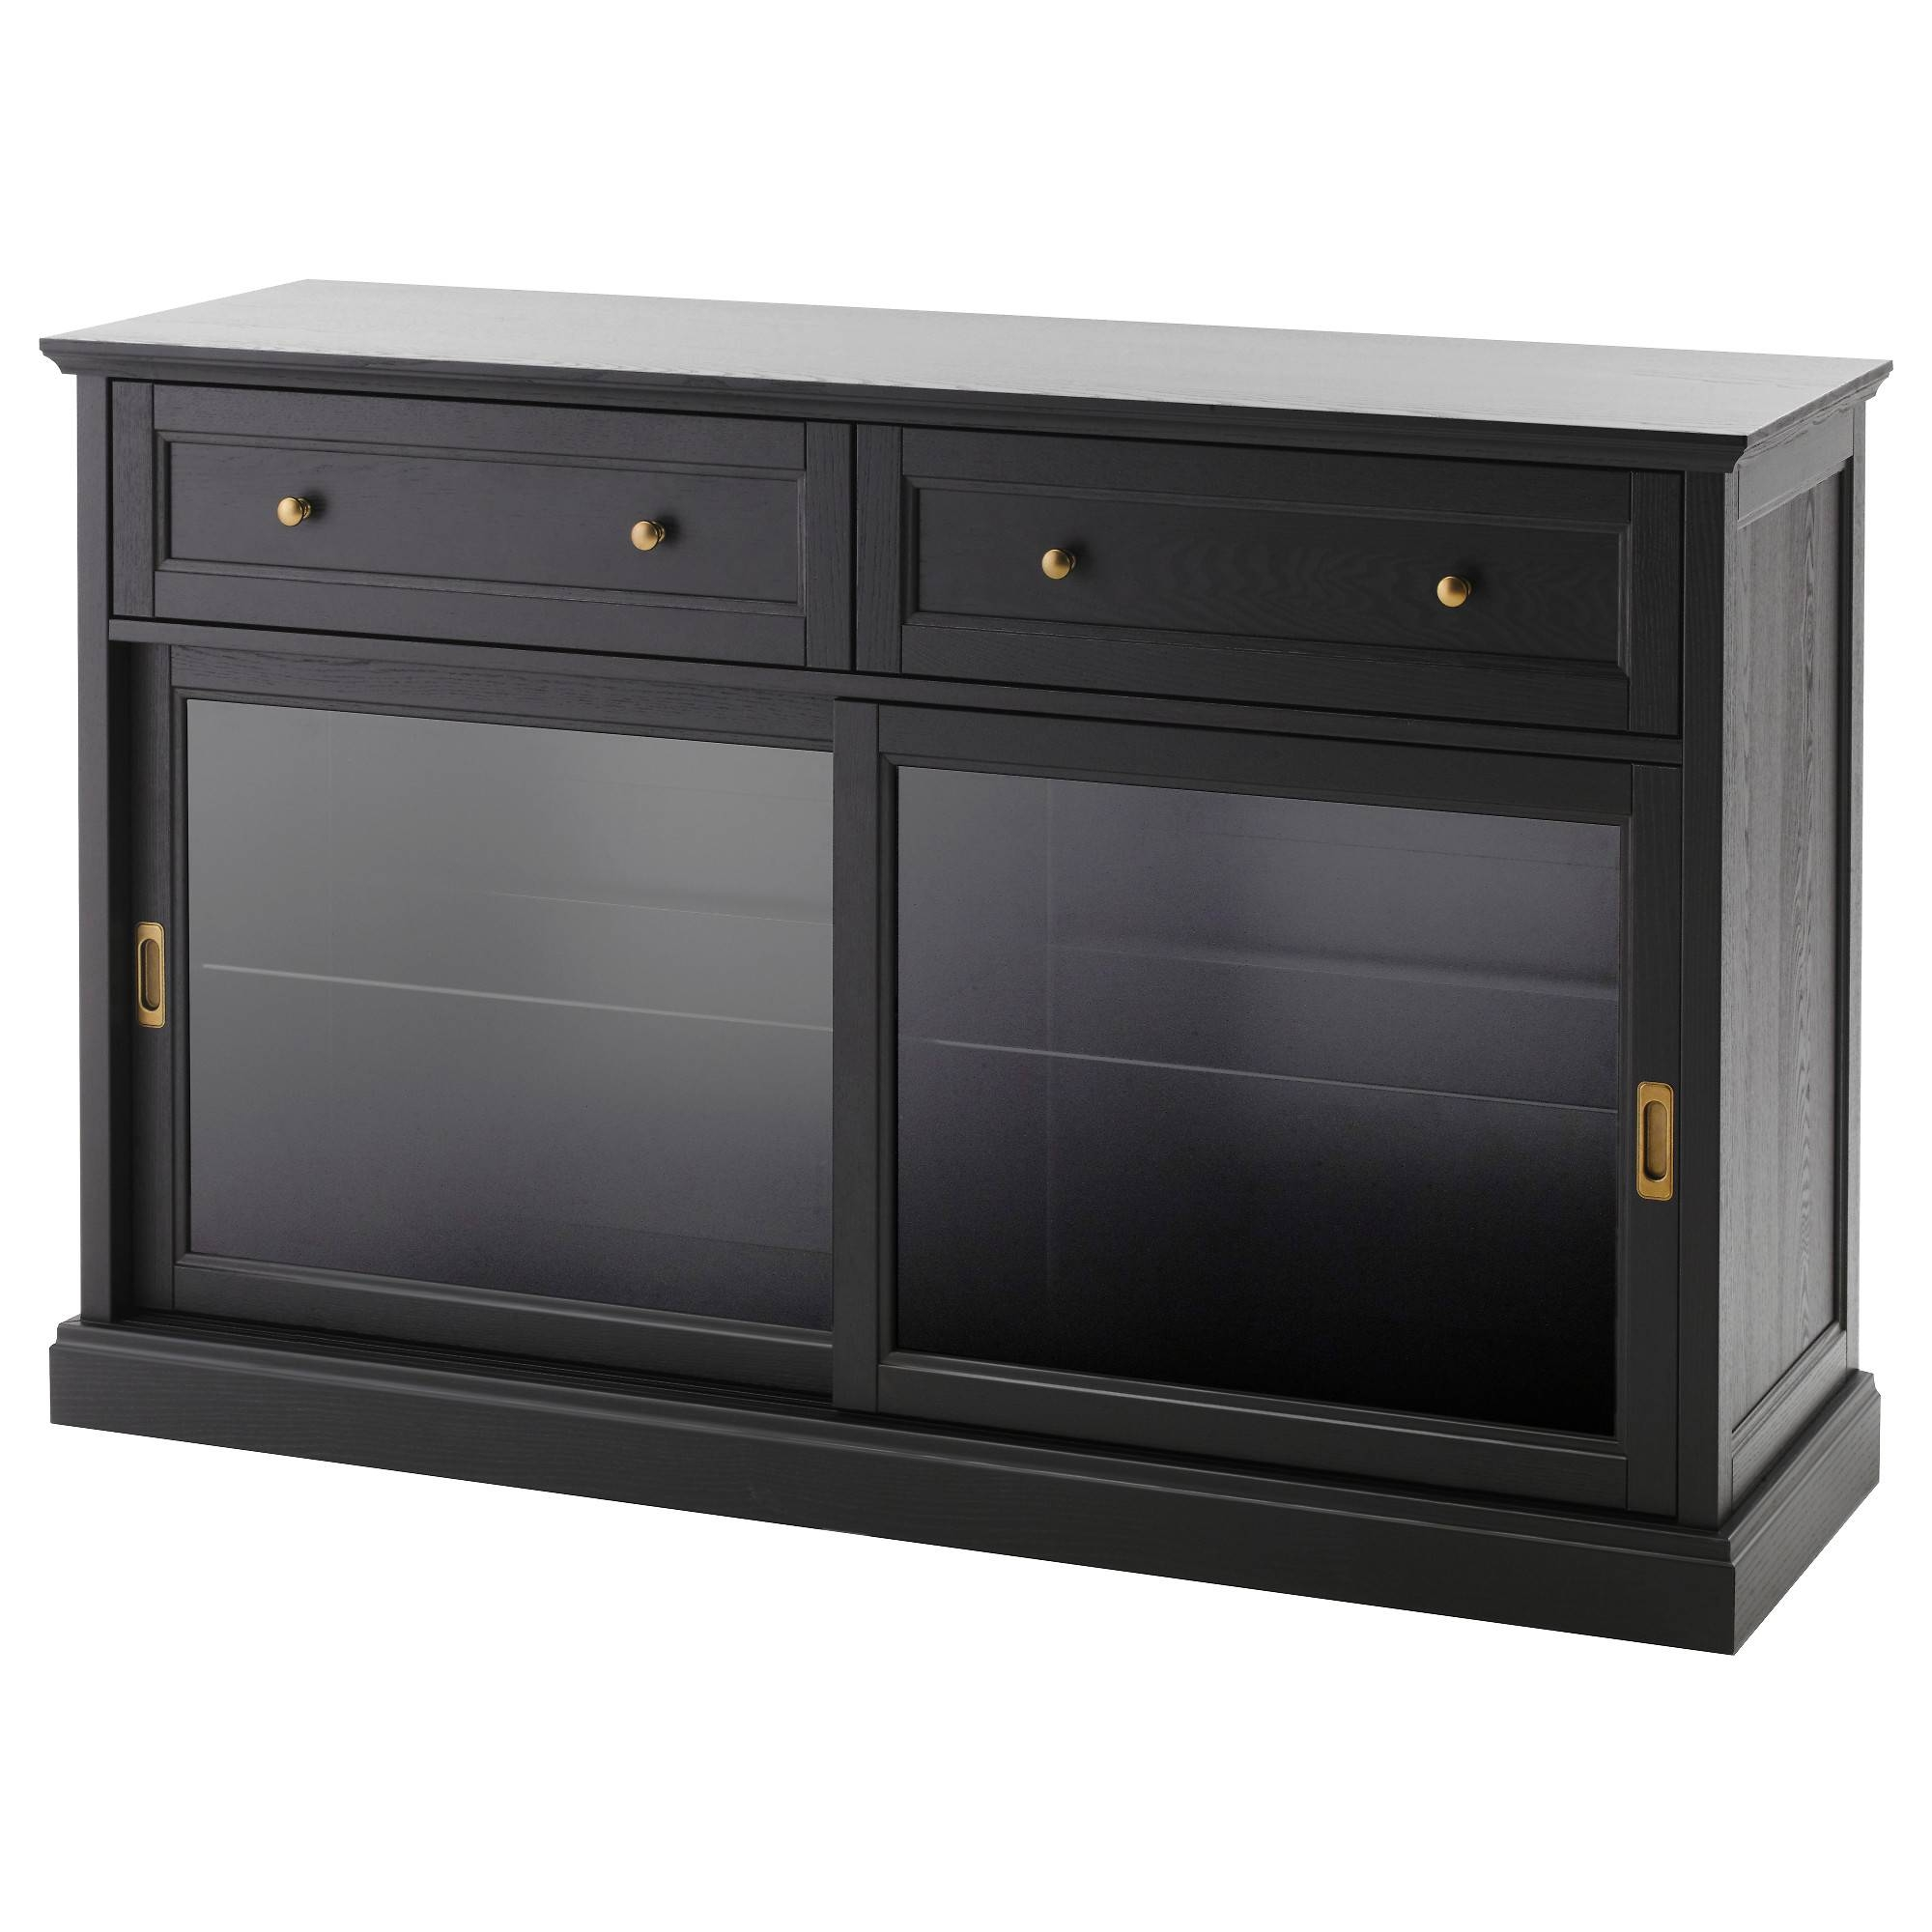 Buffet Tables & Sideboards - Ikea intended for Small Mirrored Sideboards (Image 2 of 30)